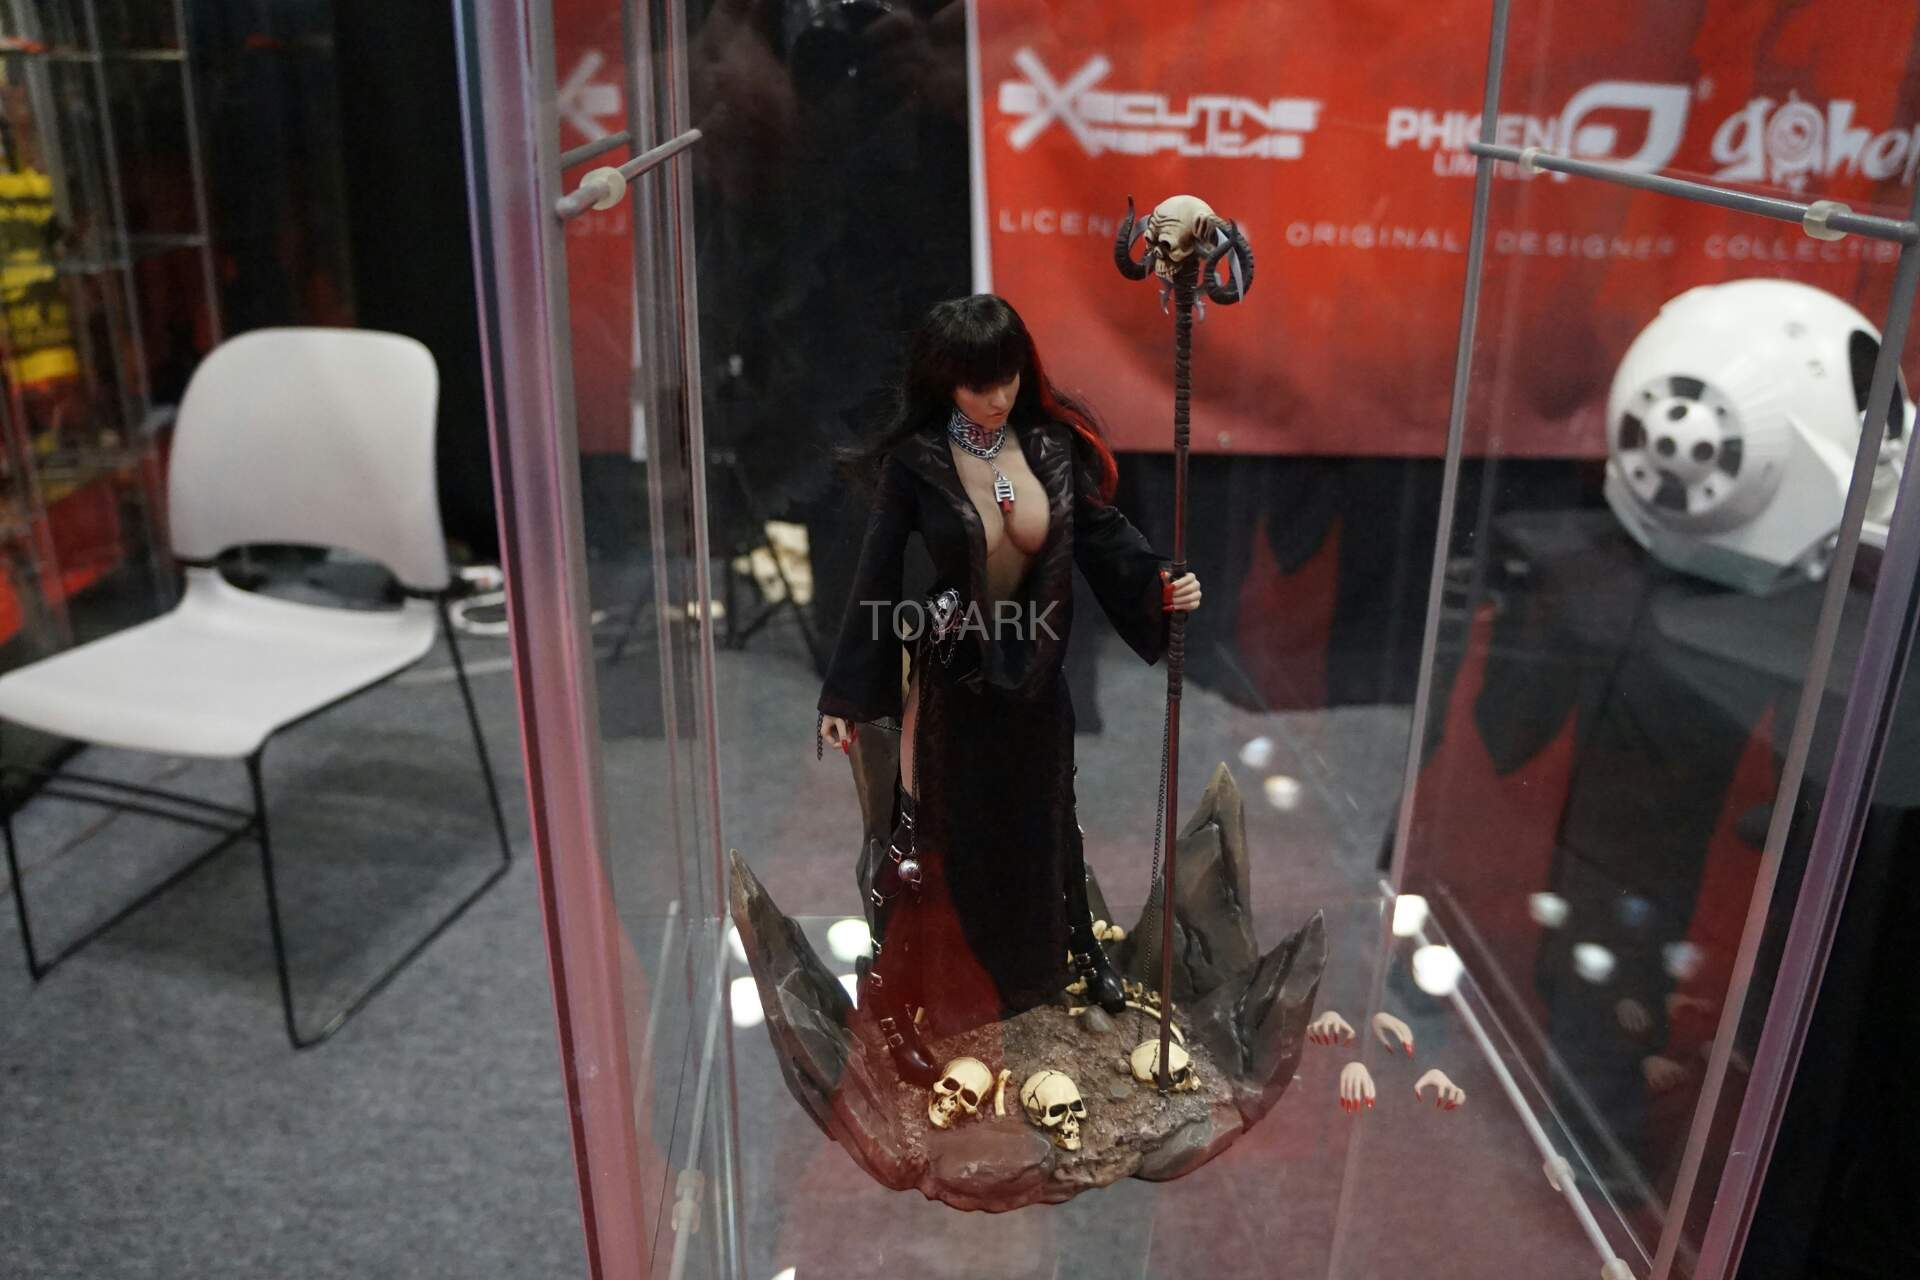 Nycc 2016 Executive Replicas Phicen Limited And Go Hero The Spinner Iron Hiro Nycc2016 Sixth Scale Figures 003